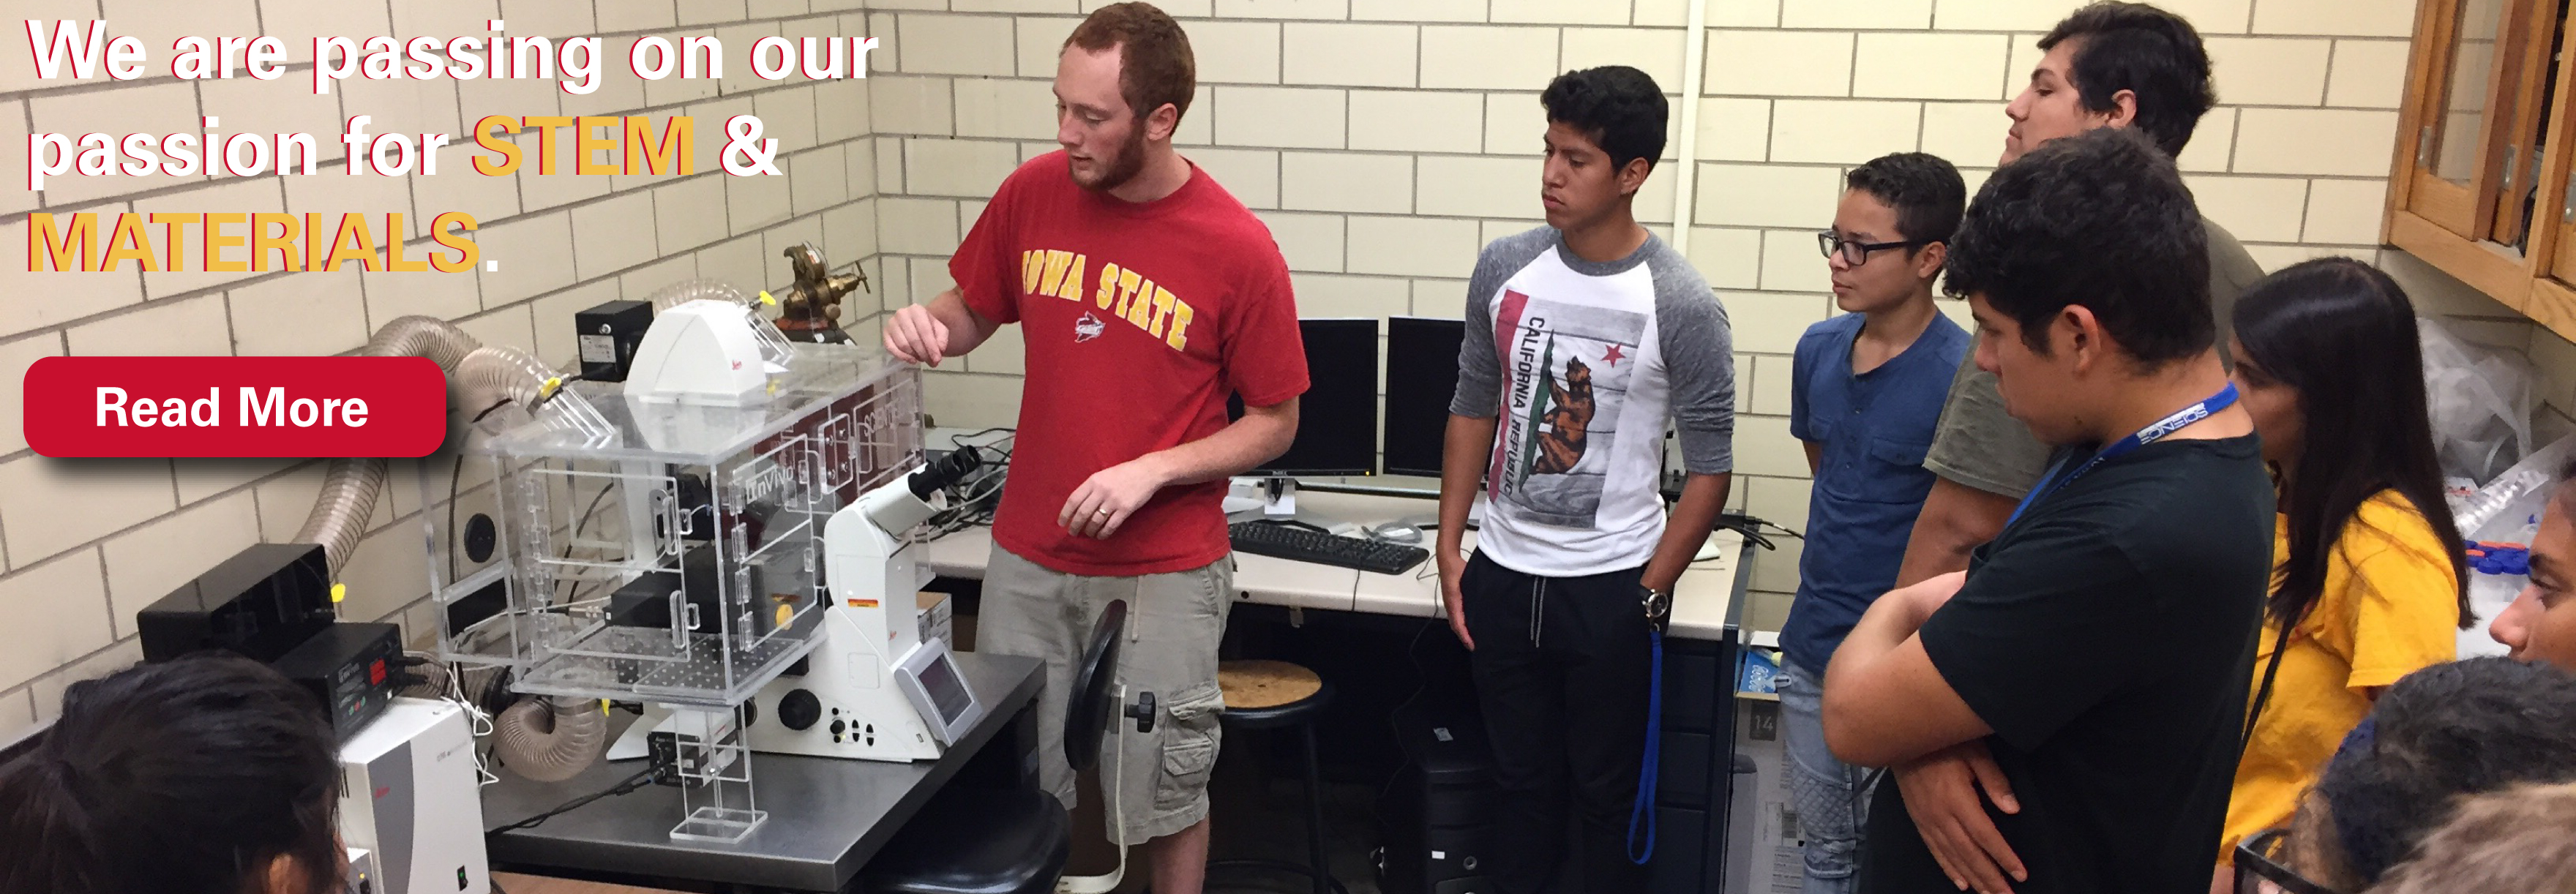 Kyle Miller shows students equipment in MSE for an outreach activity.